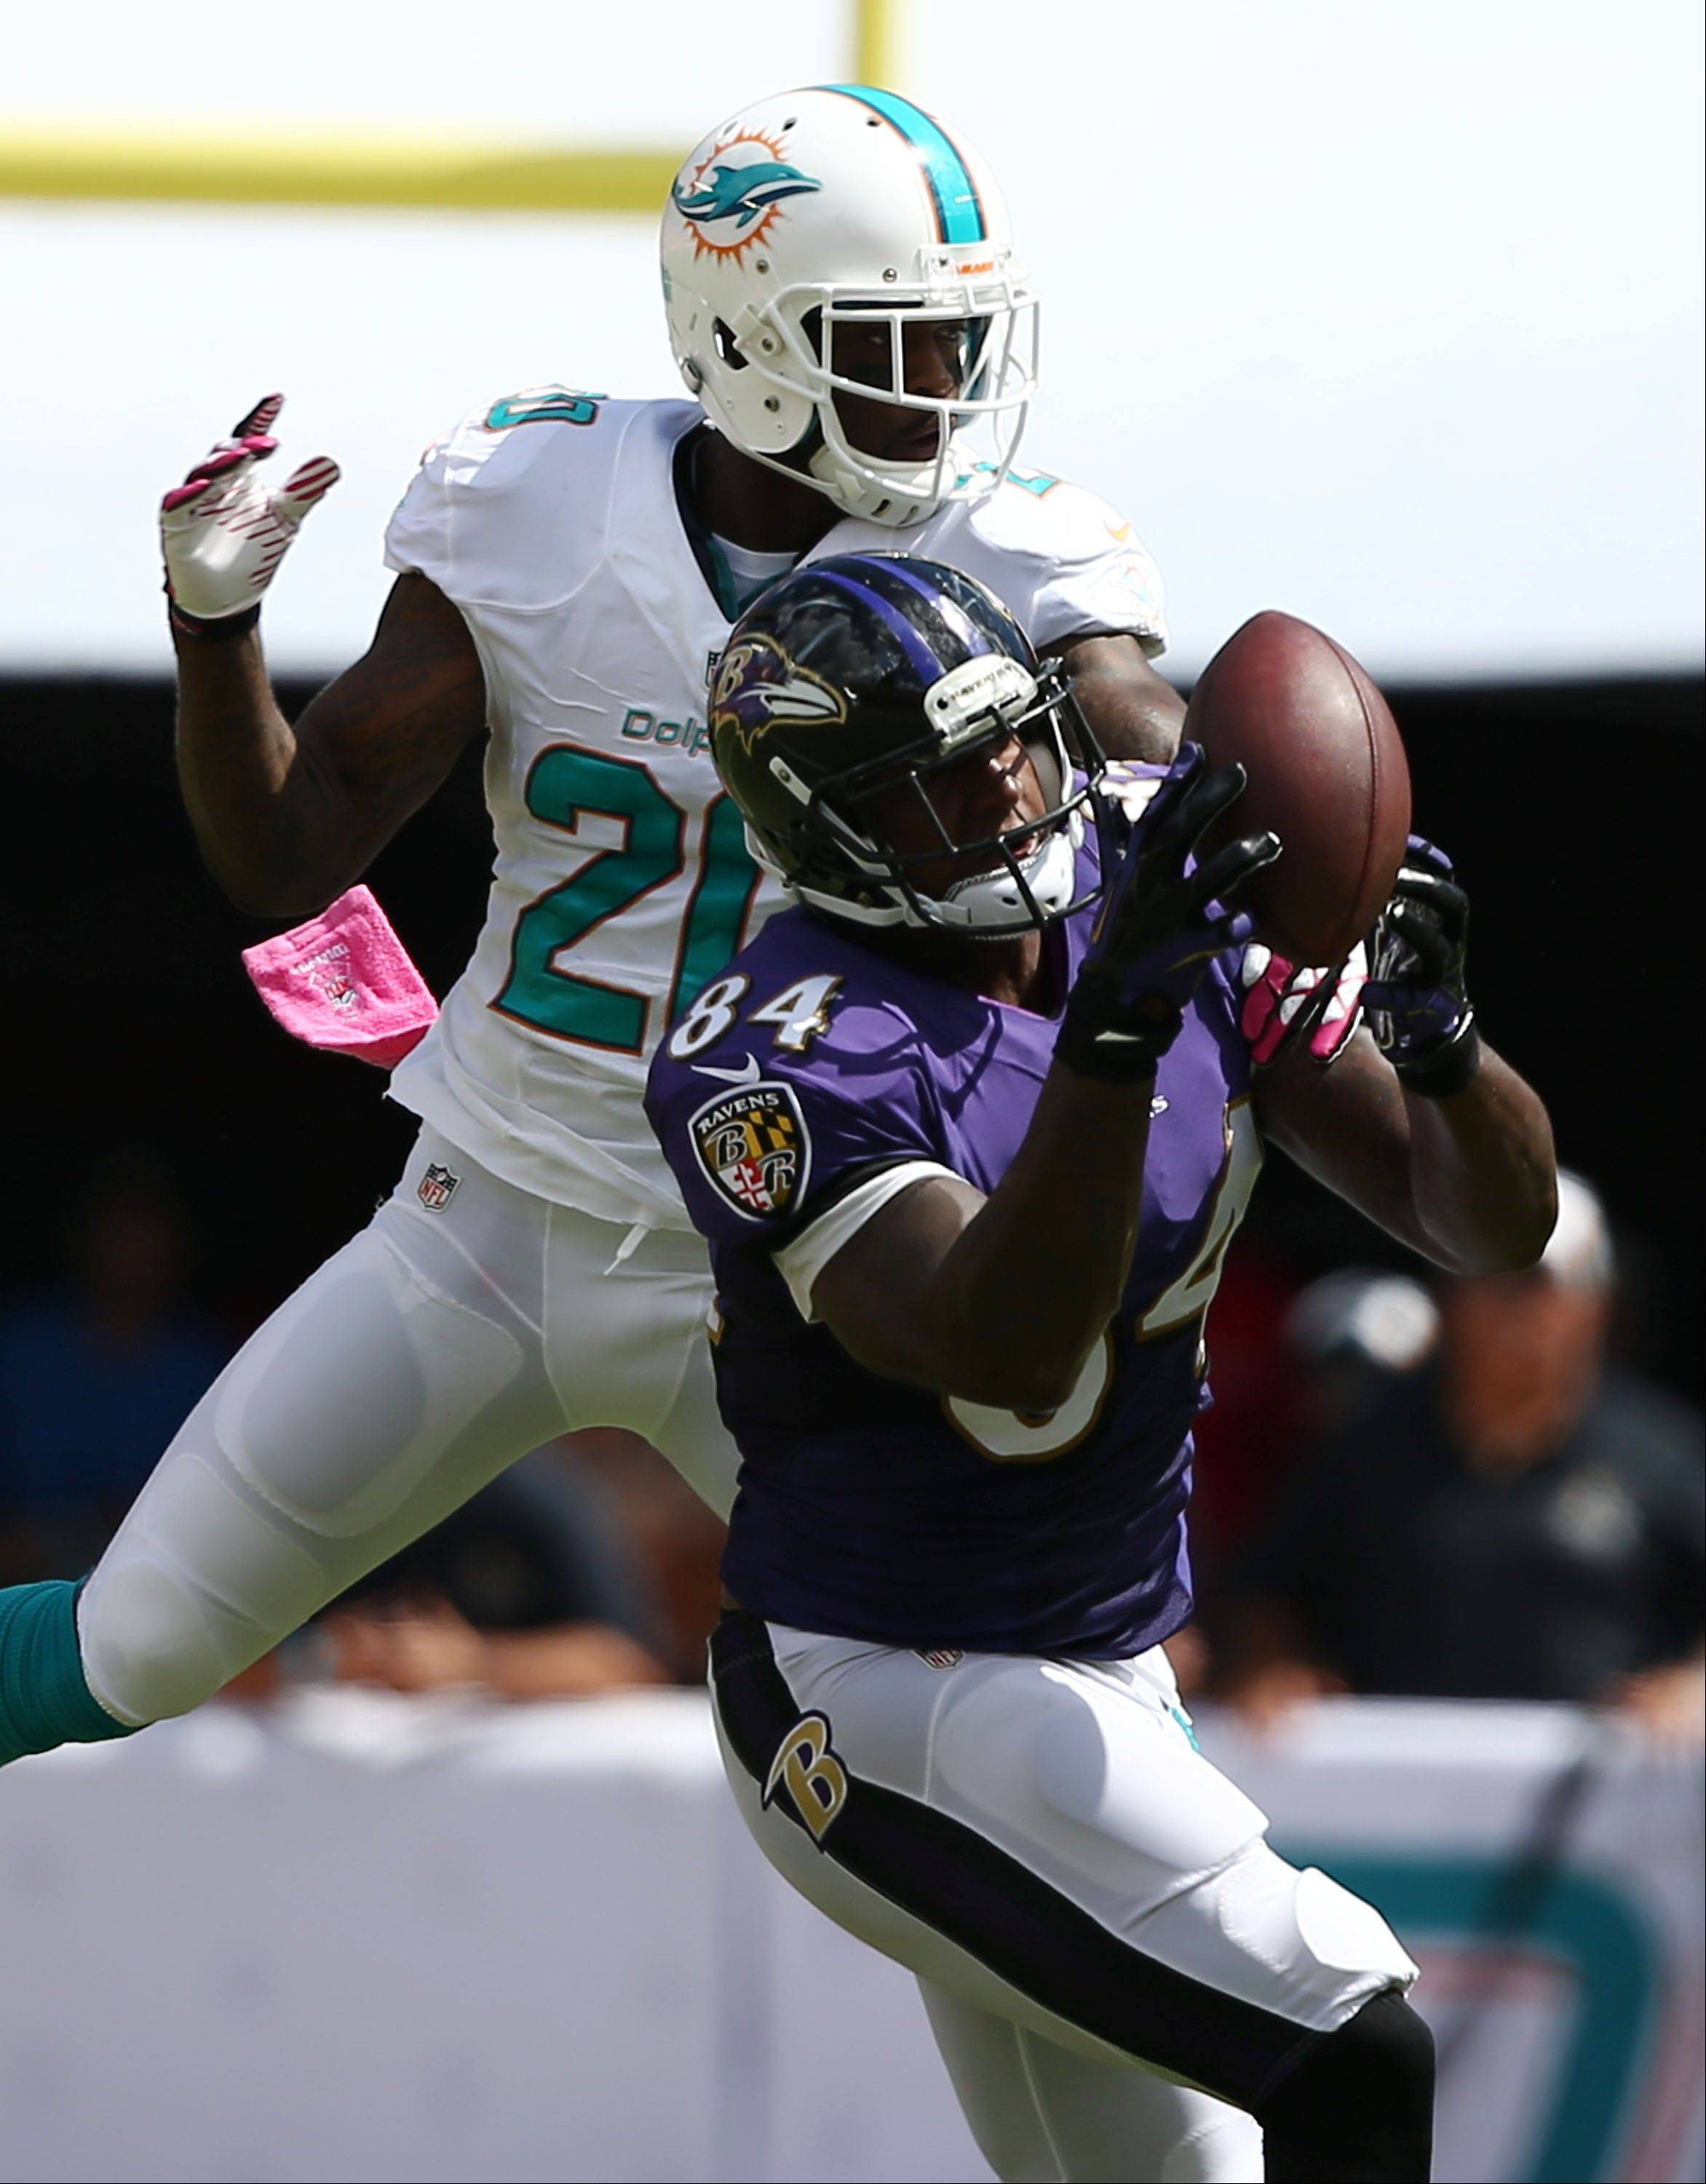 Baltimore Ravens tight end Ed Dickson (84) catches a pass over Miami Dolphins free safety Reshad Jones (20) during the first half of an NFL football game, Sunday, Oct. 6, 2013, in Miami Gardens, Fla.